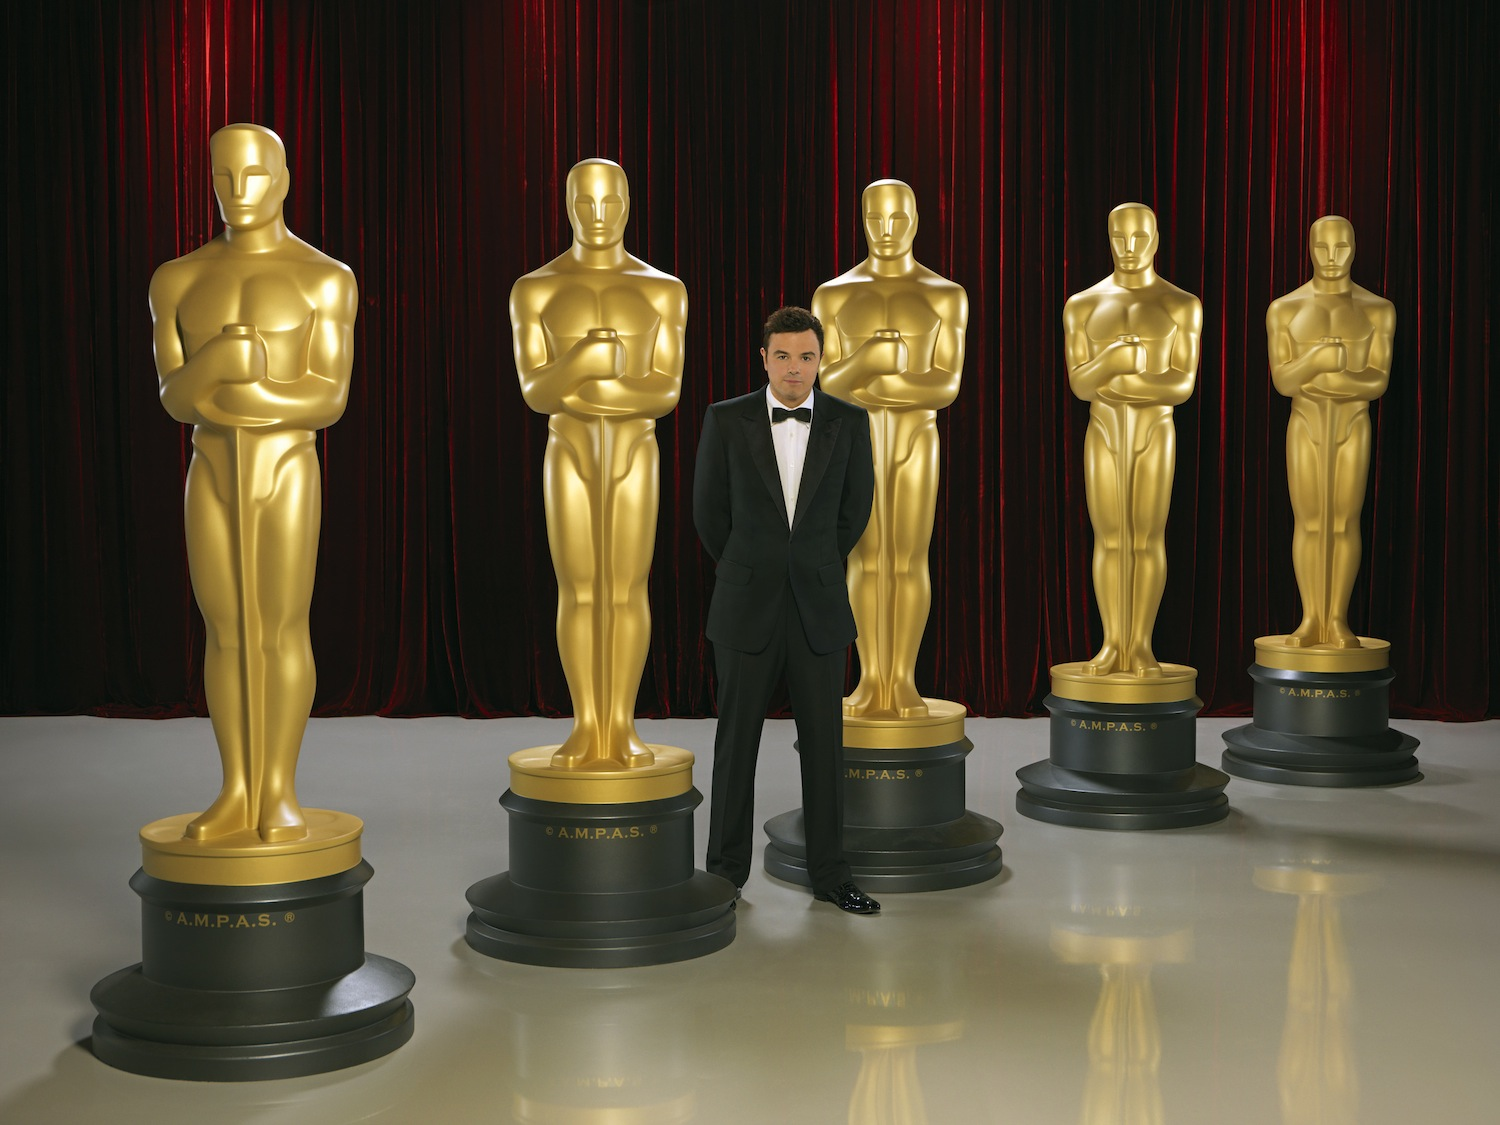 Seth MacFarlane will host The 85th Annual Academy Awards, broadcasting live on `Oscar Sunday,` Feb. 24, on the ABC Television Network. (photo by Bob D'Amico/ABC)